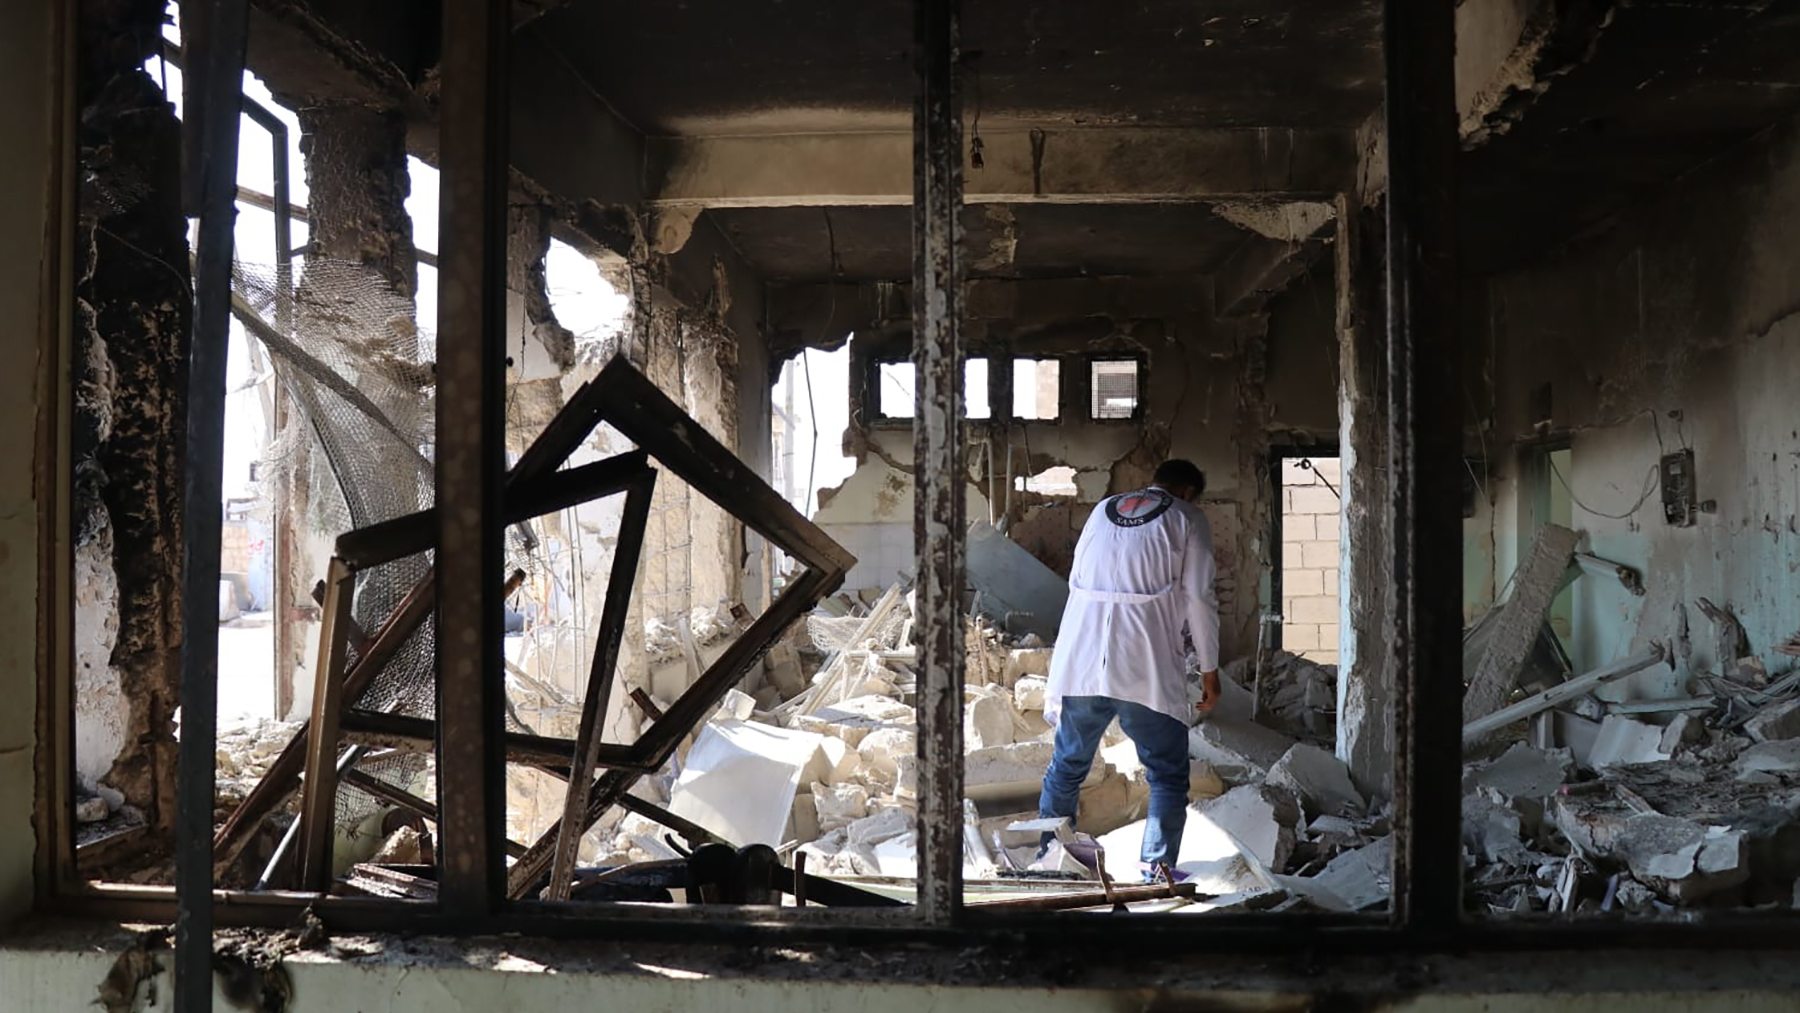 A Syrian American Medical Society health provider inspects a damaged building in northwestern Syria. The group is one of the few remaining groups working in the area, since many have left due to an escalation of aerial attacks since April 2019. (Photo courtesy of SAMS)